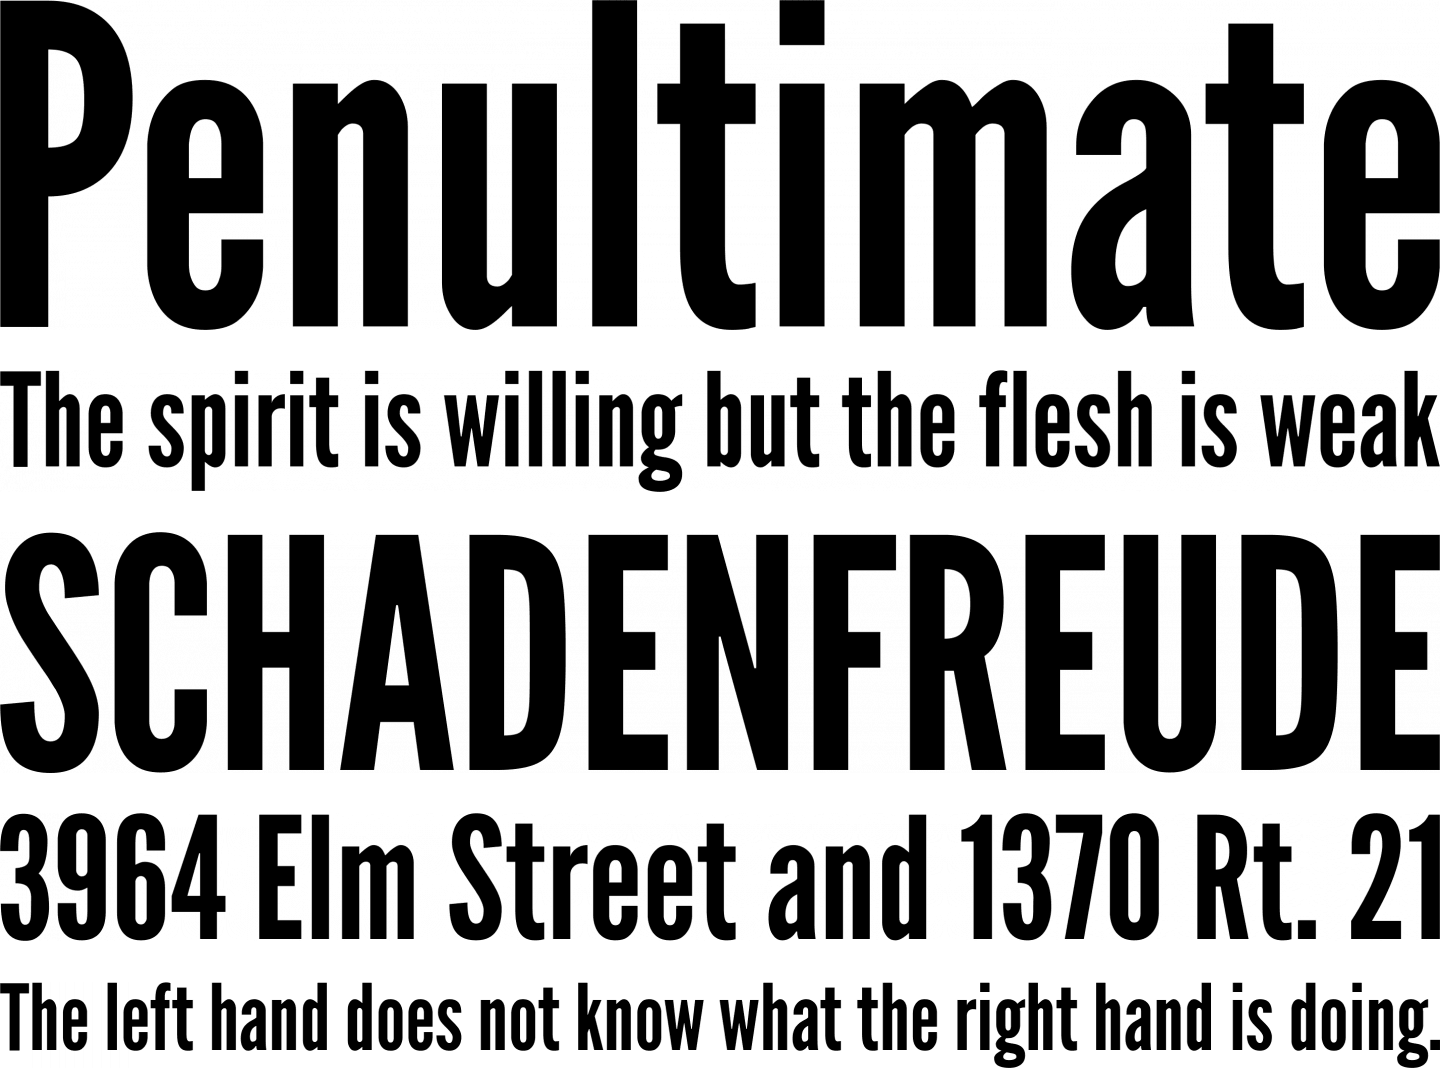 Vector underline gothic. League font free by